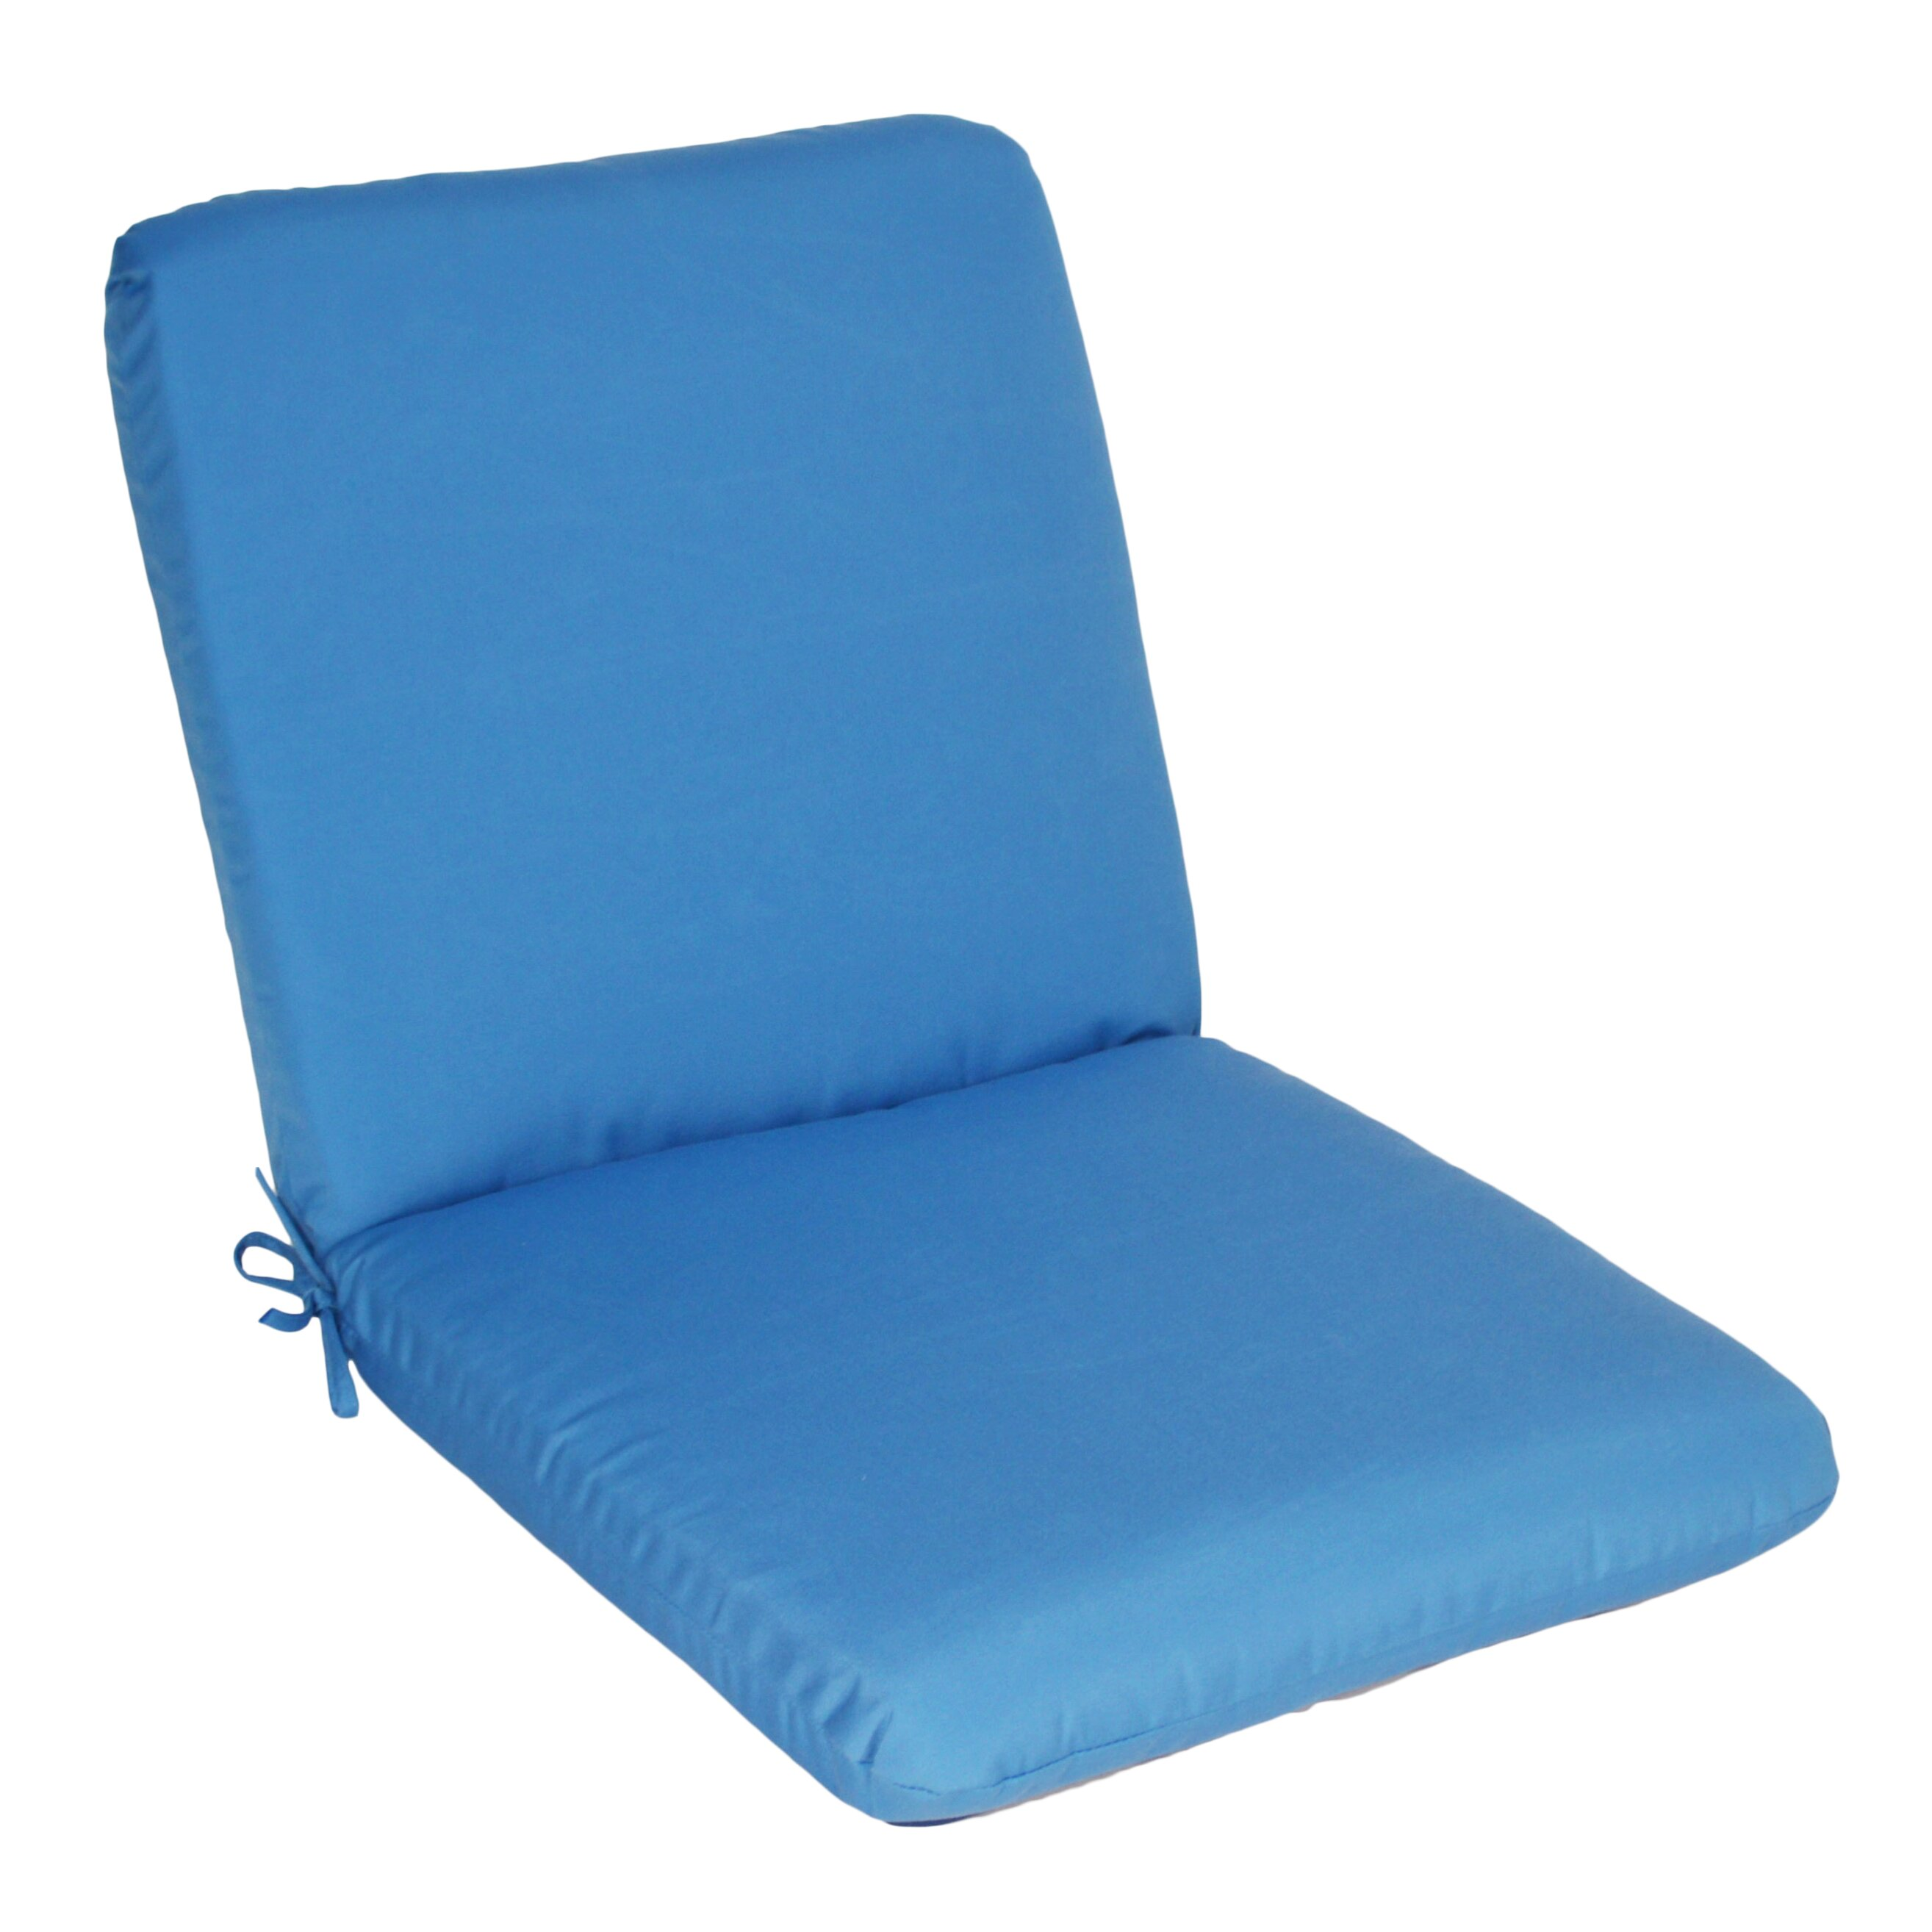 Wildon Home Outdoor Sunbrella Club Chair Cushion